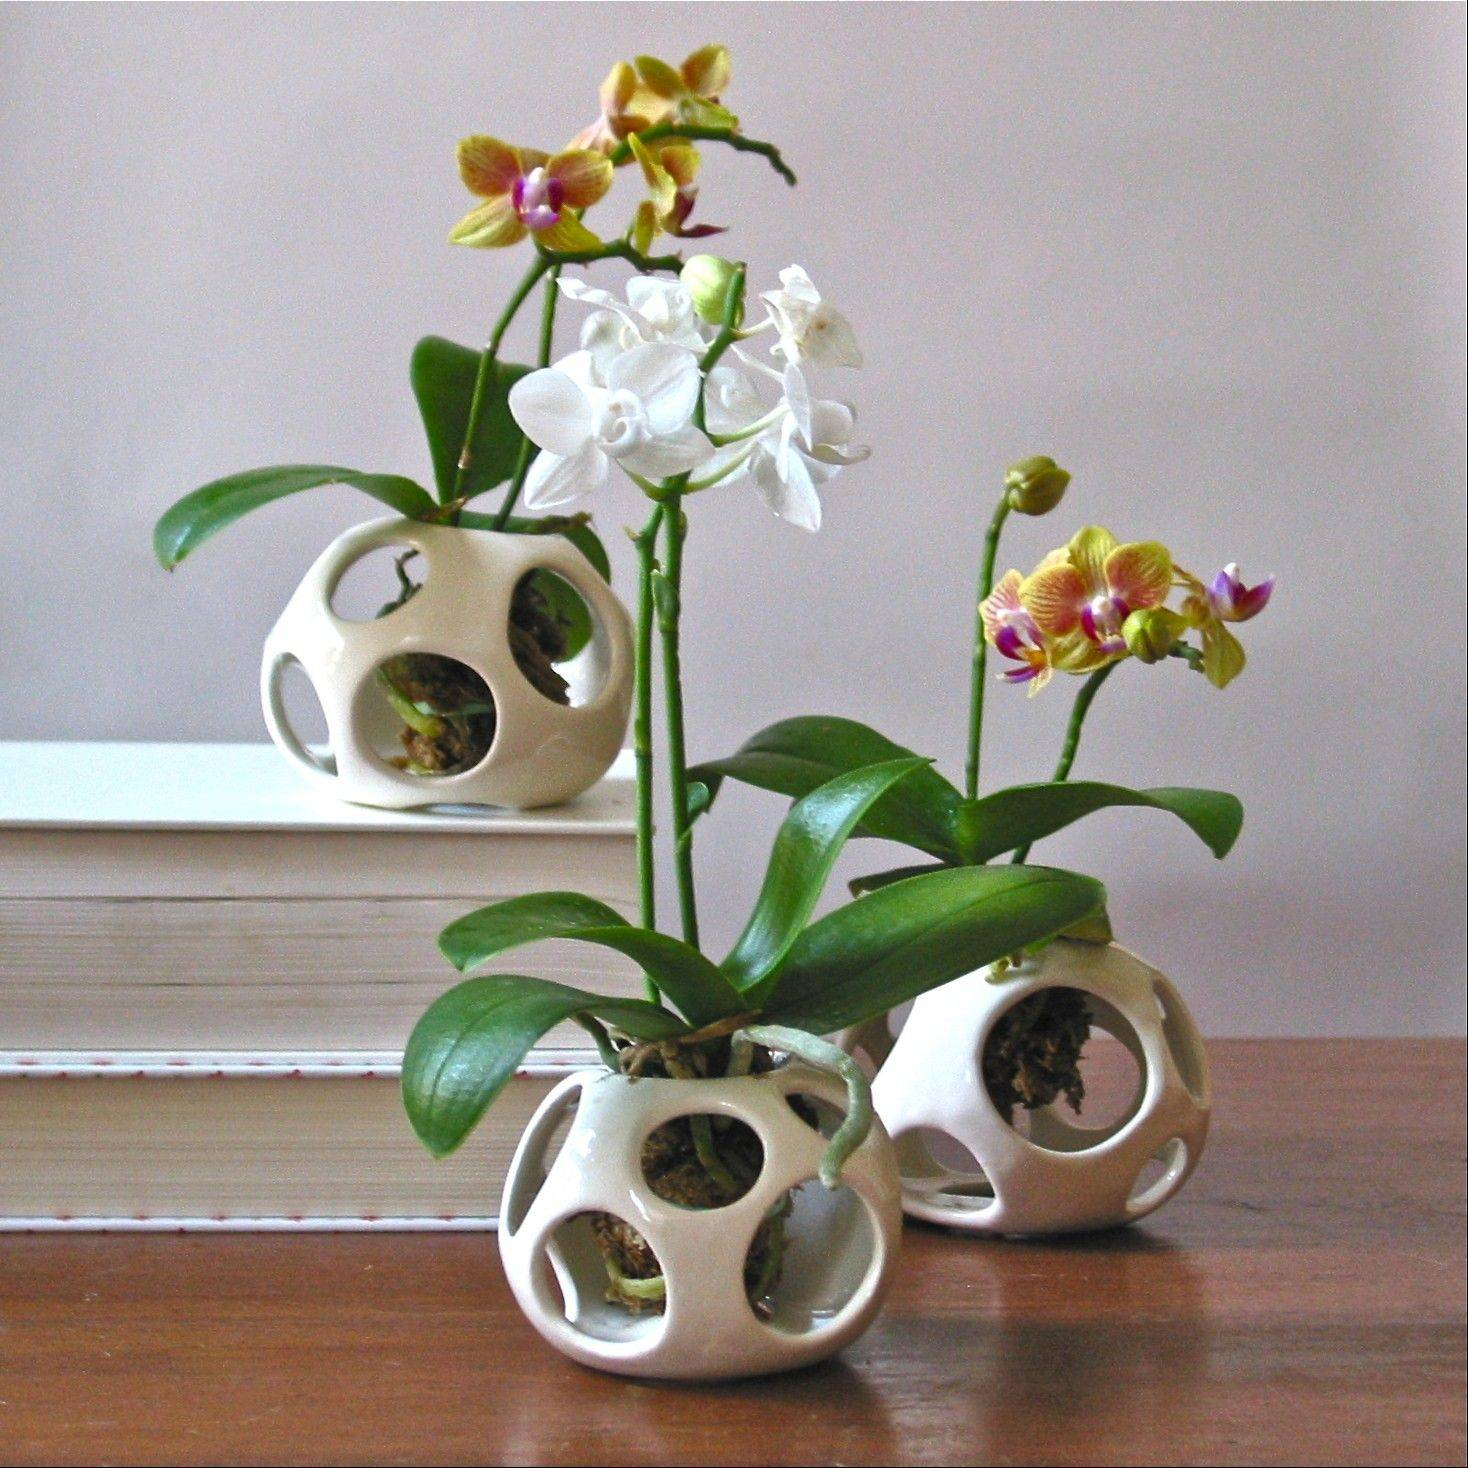 In this undated image released by air pod plant holders, New York-based ceramic artist Nicholas Newcomb�s earthenware air pod holders showcase miniature orchids in New York.